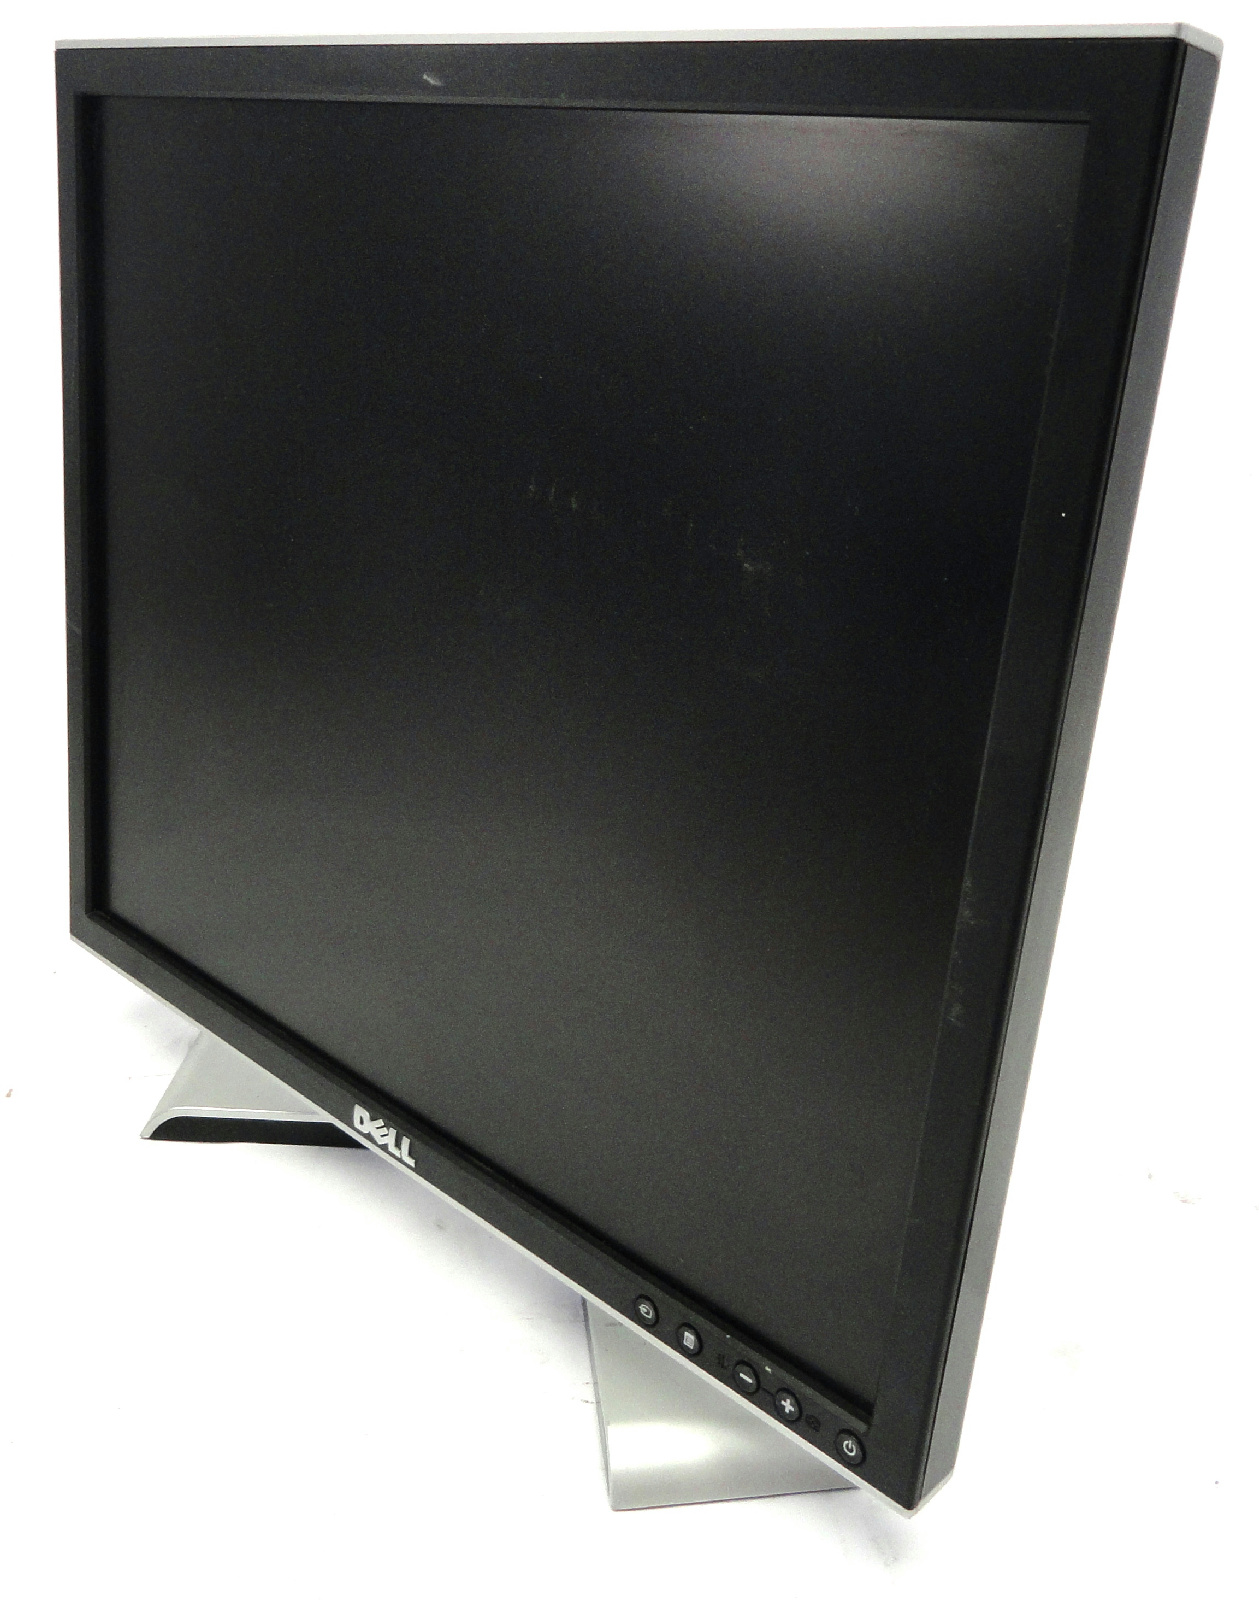 Dell 1908FPb 19 Inch LCD Monitor